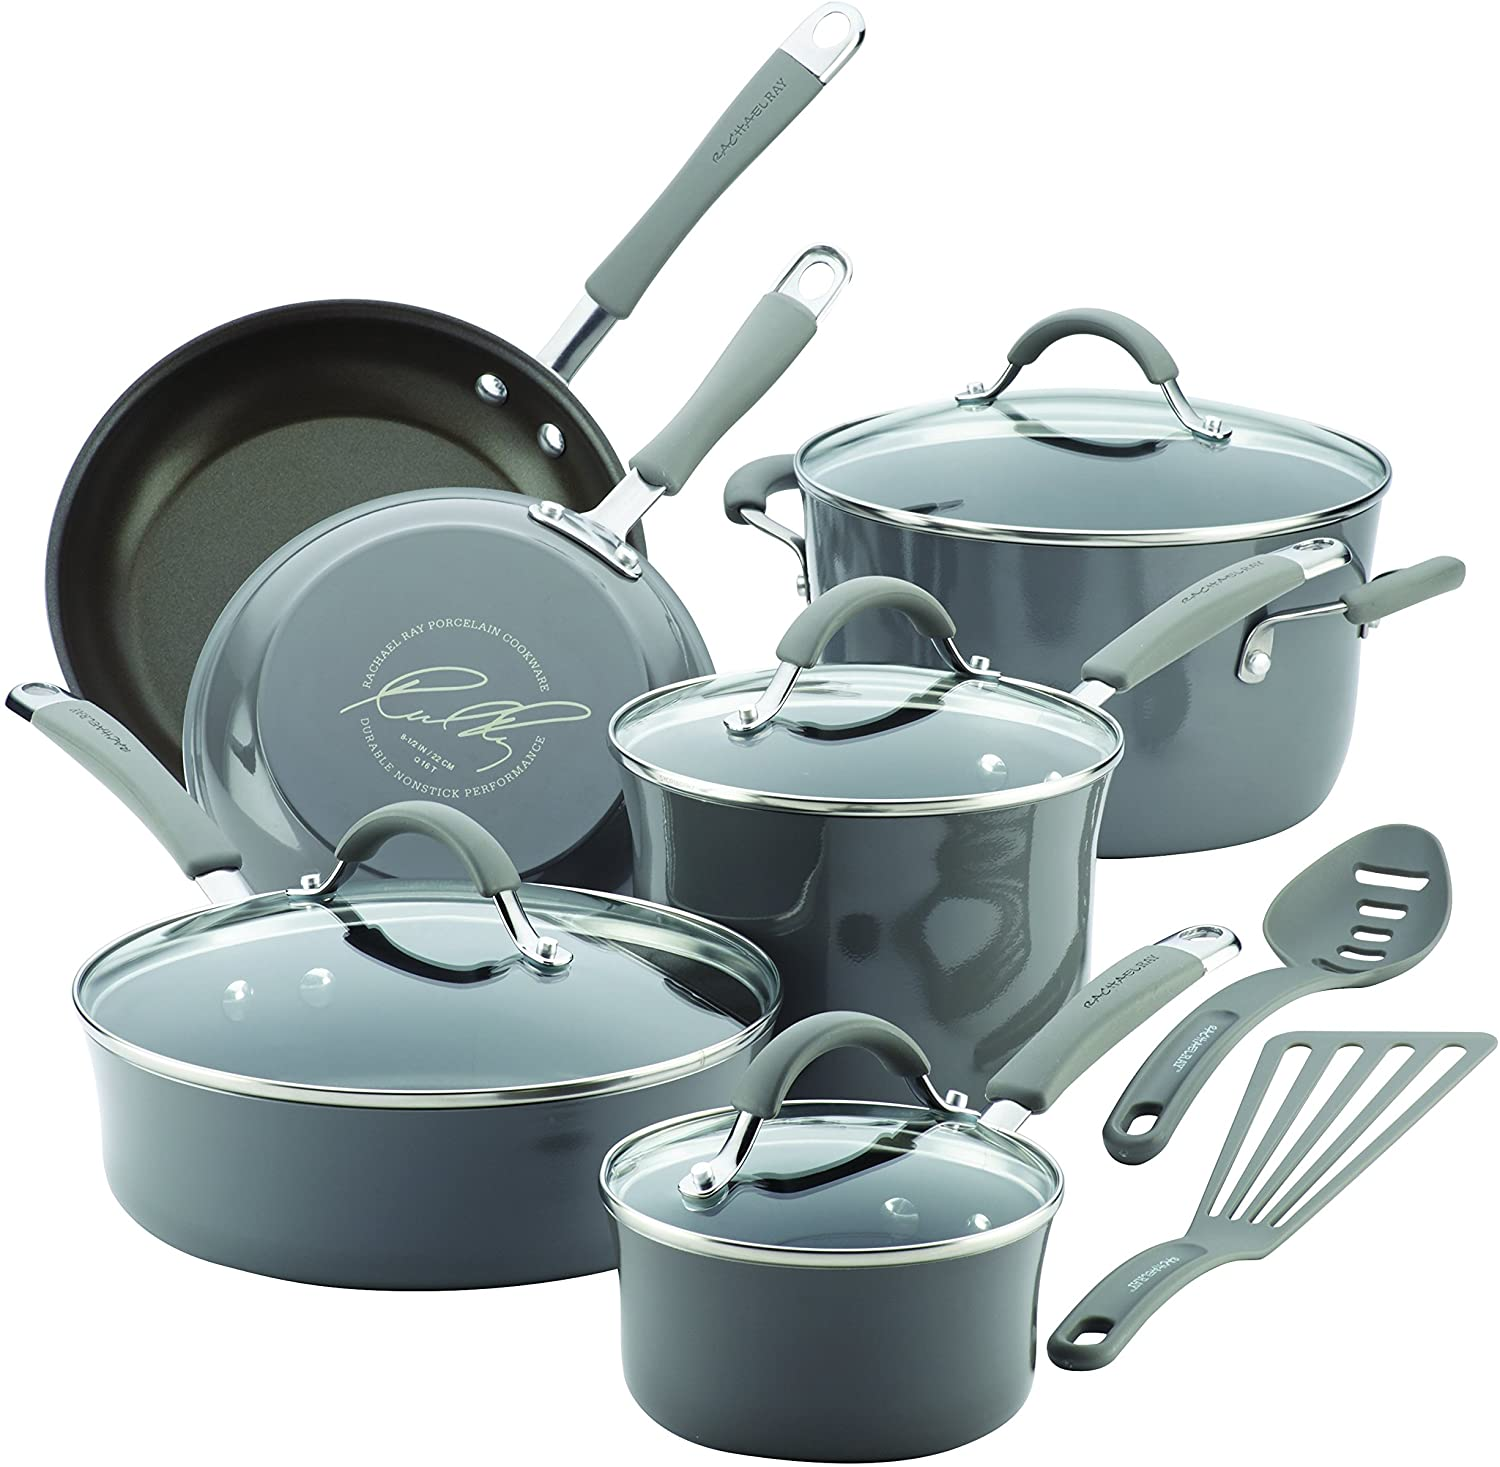 Rachael Ray Cucina Hard Porcelain Enamel Nonstick Cookware for Glass Top Stoves